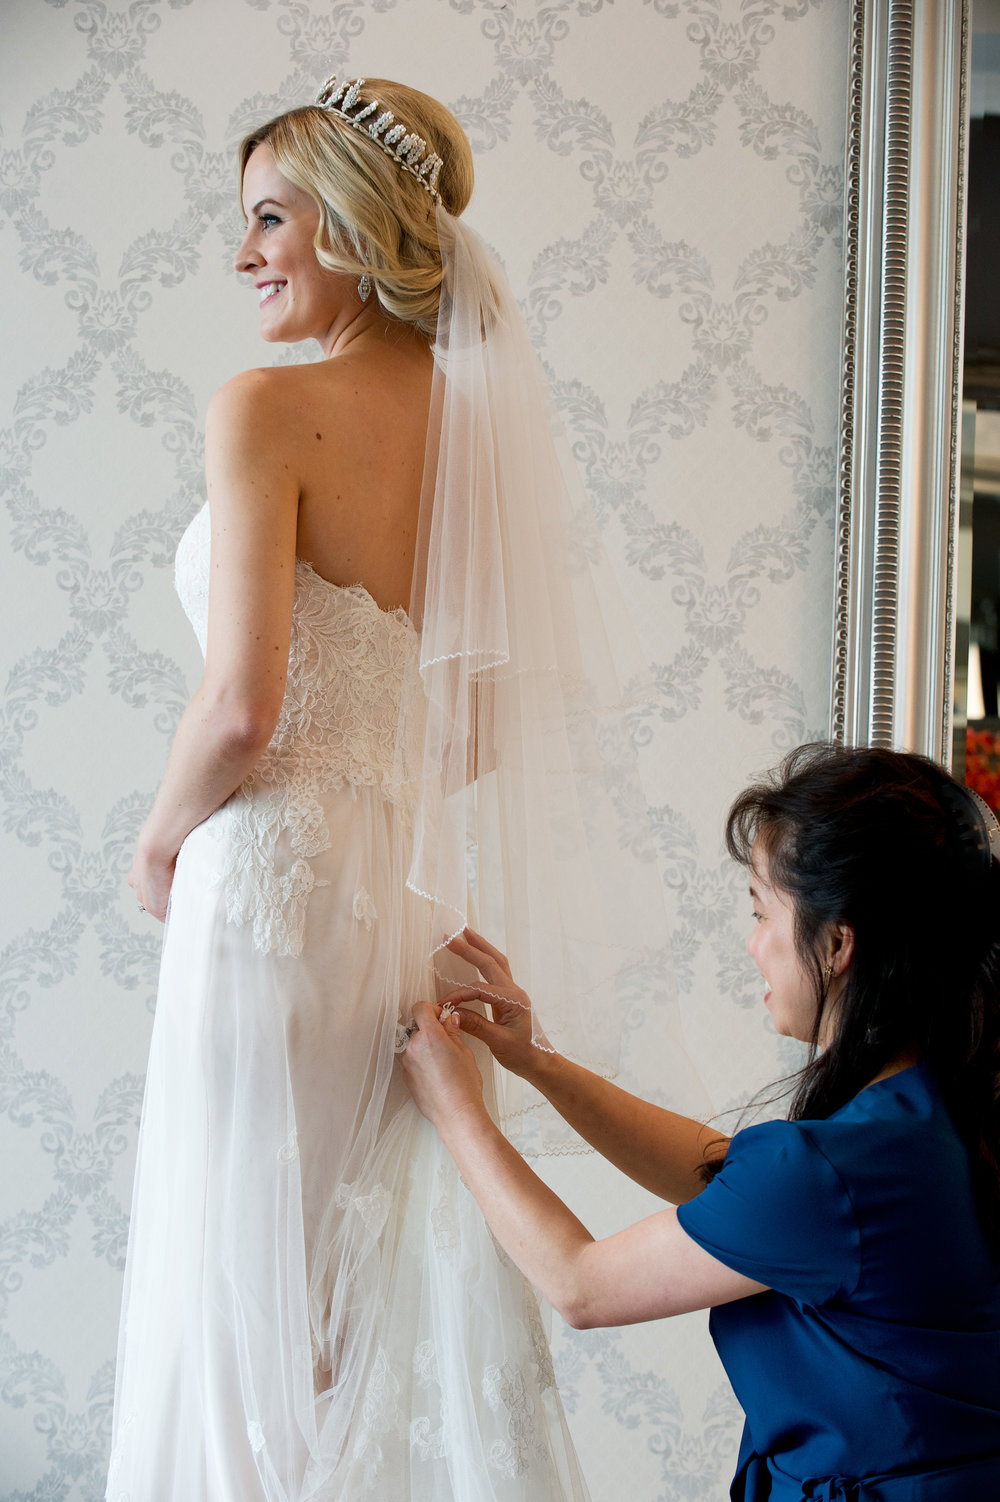 Mai with one of our beautiful brides, Michelle.